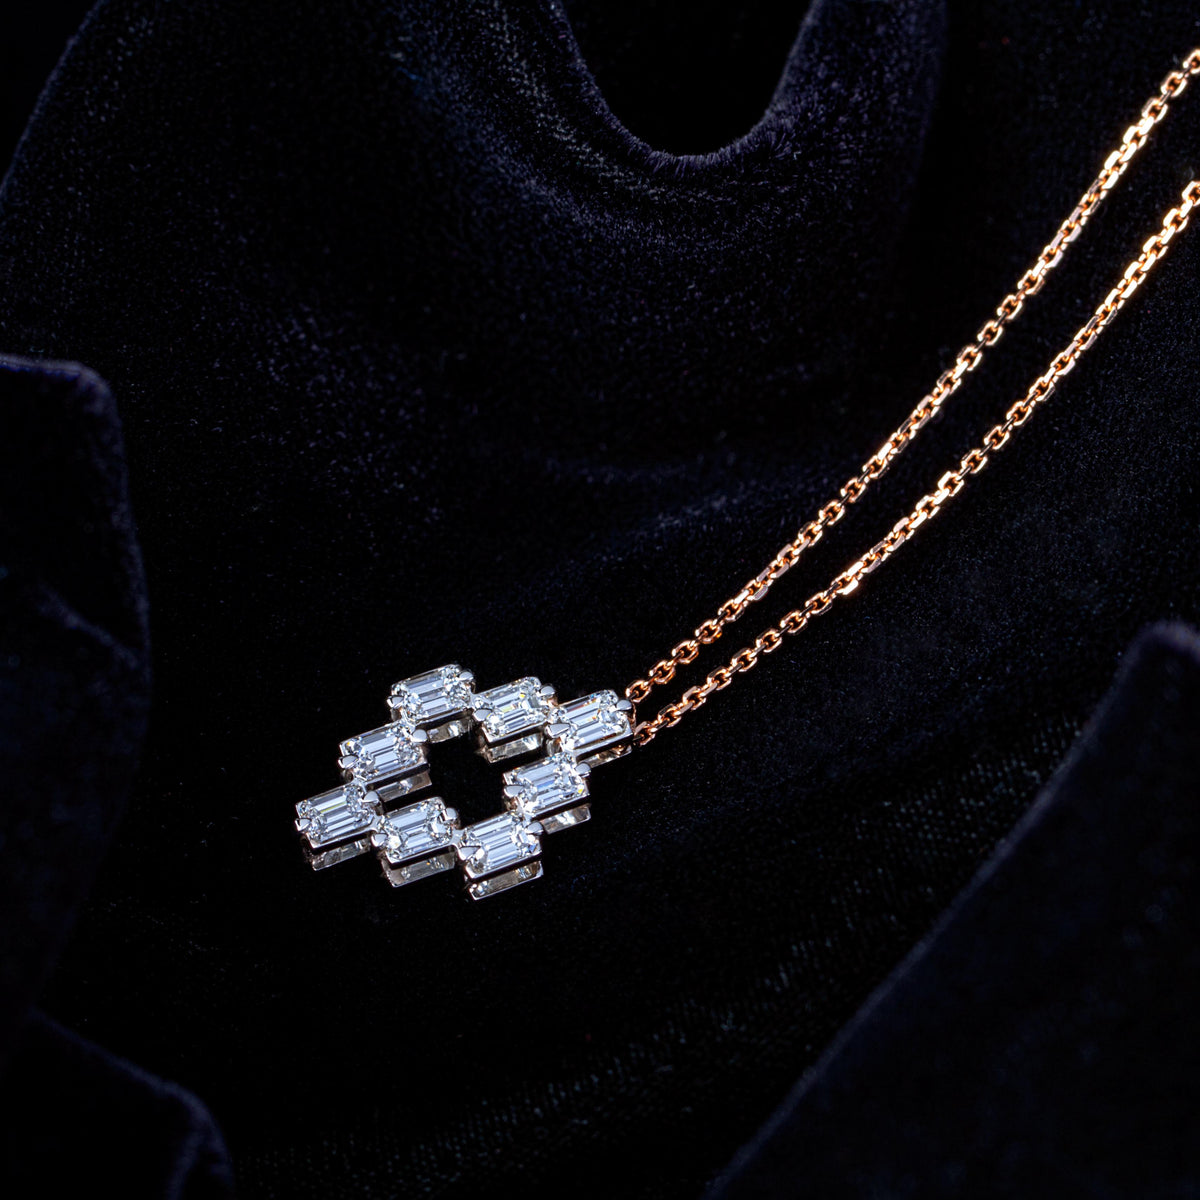 Emerald Cut Internal Cross Diamond pendent